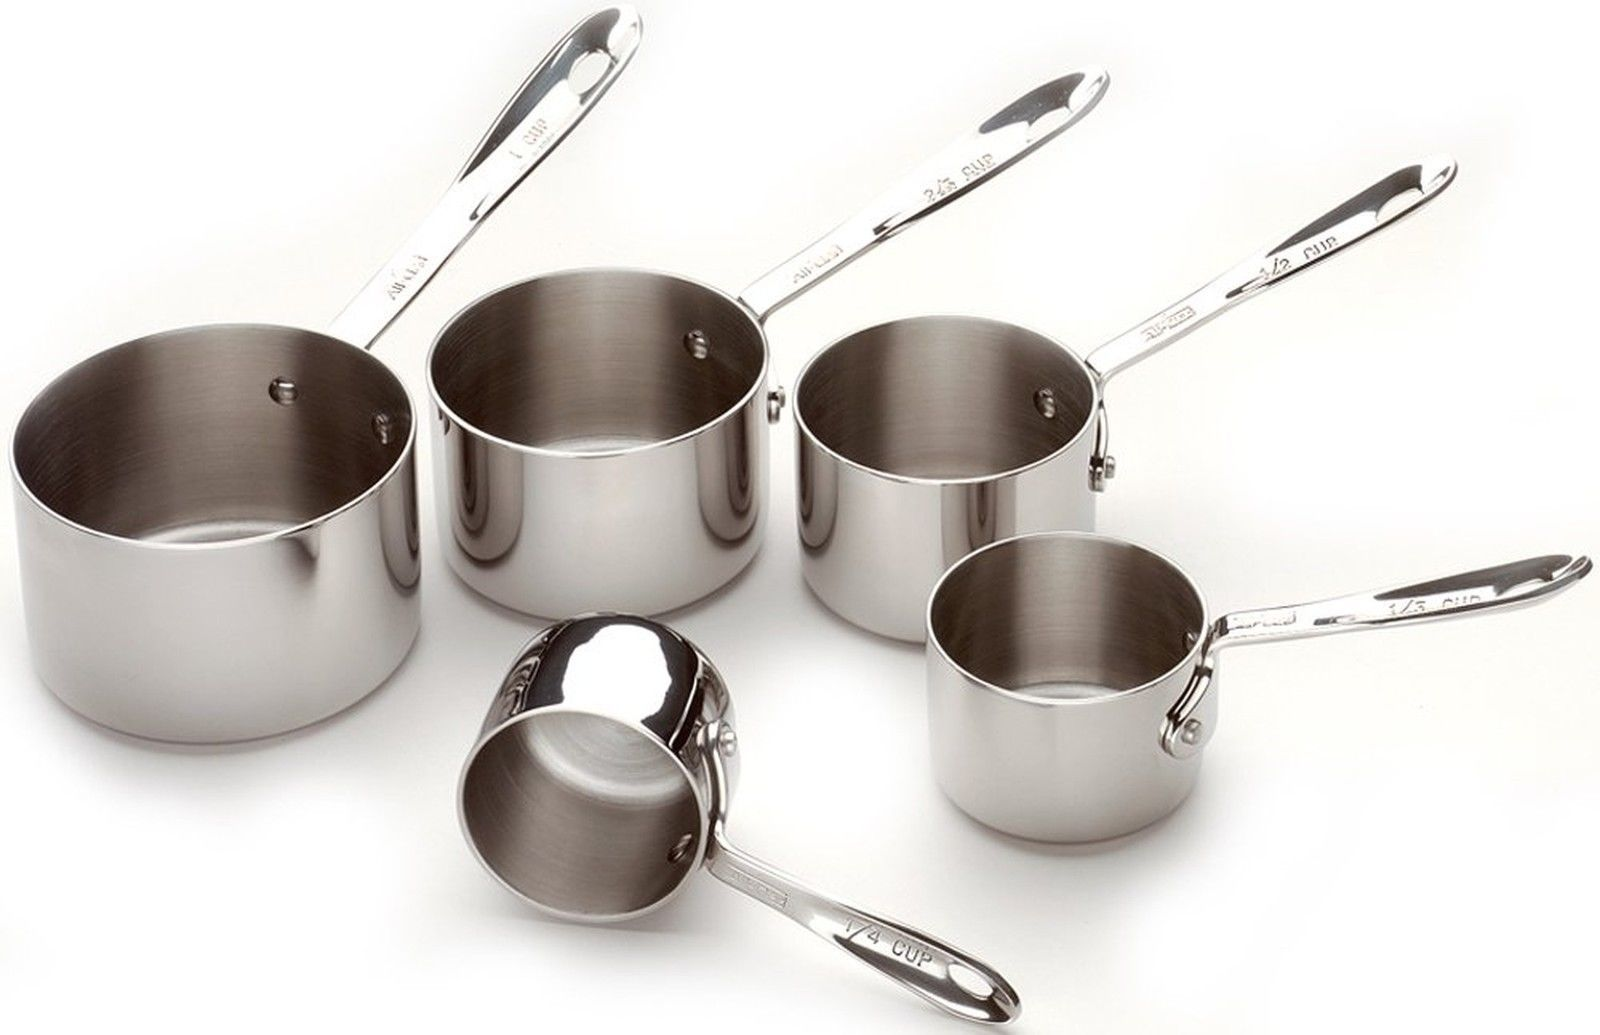 All-Clad 59917 Stainless Steel Measuring Cups Cookware Set... Free Shipping, New